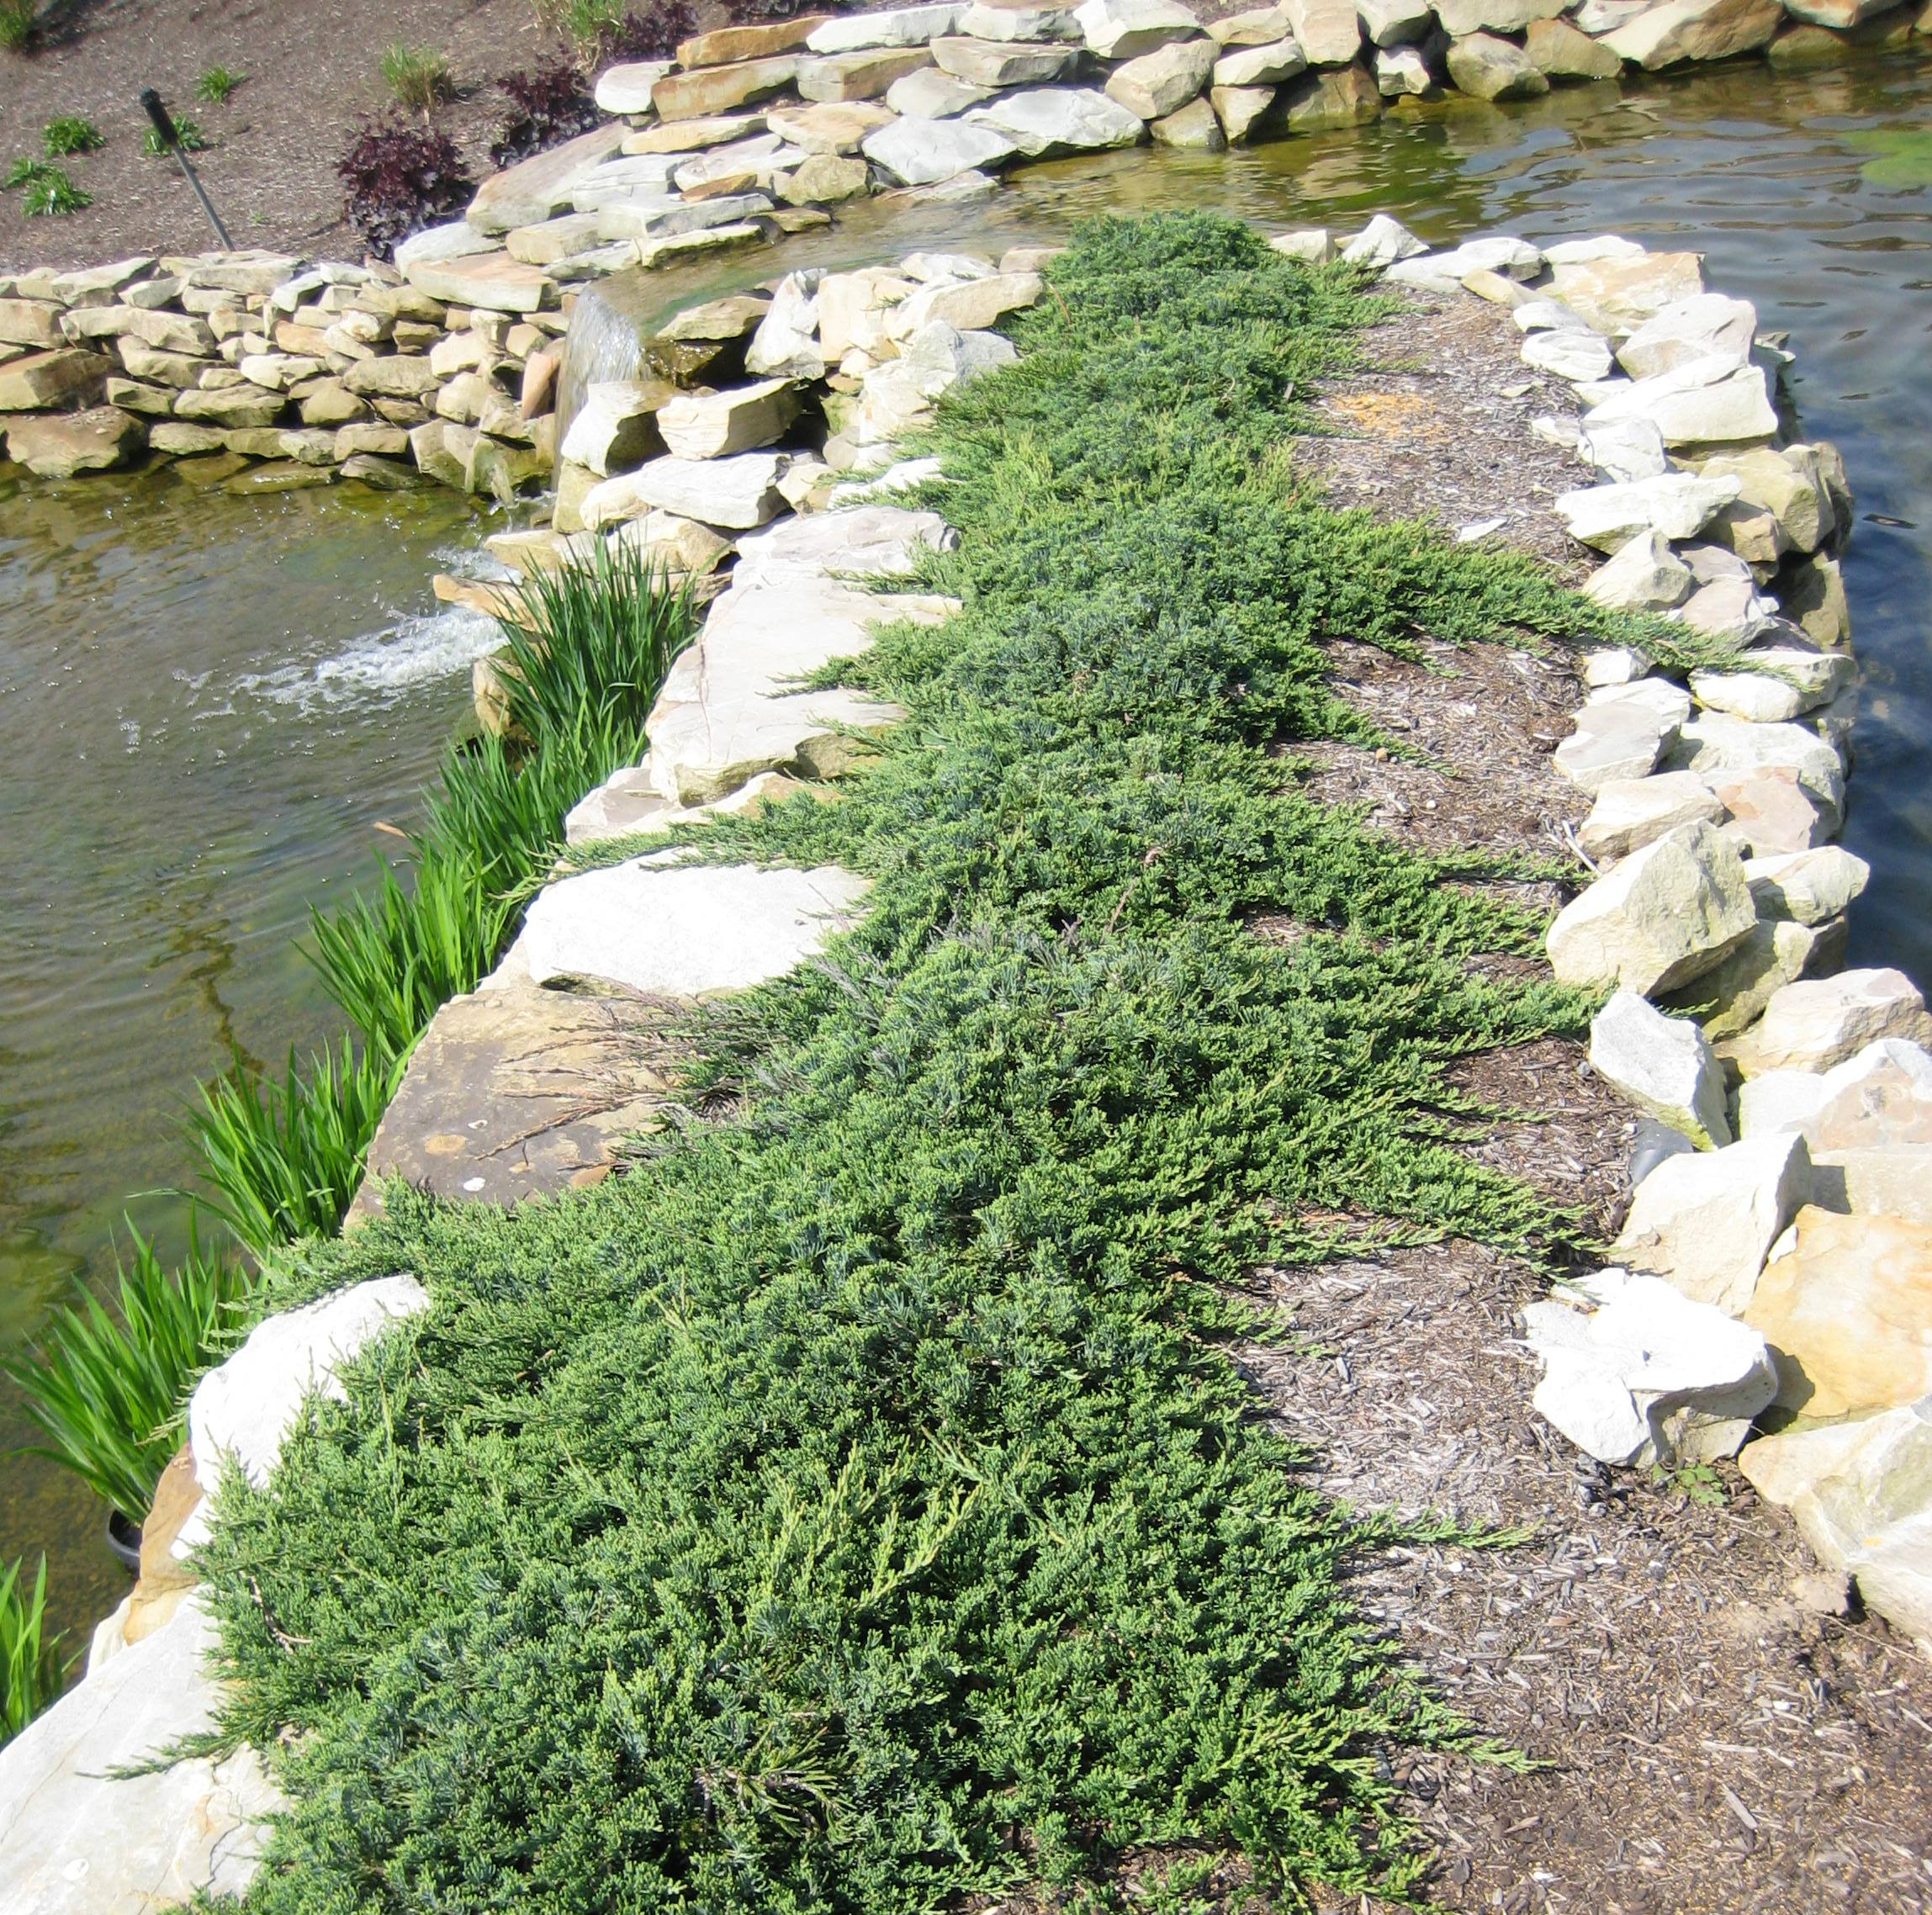 Japanese rock gardens history - Willoway Nurseries Inc The Midwest S Premier Wholesale